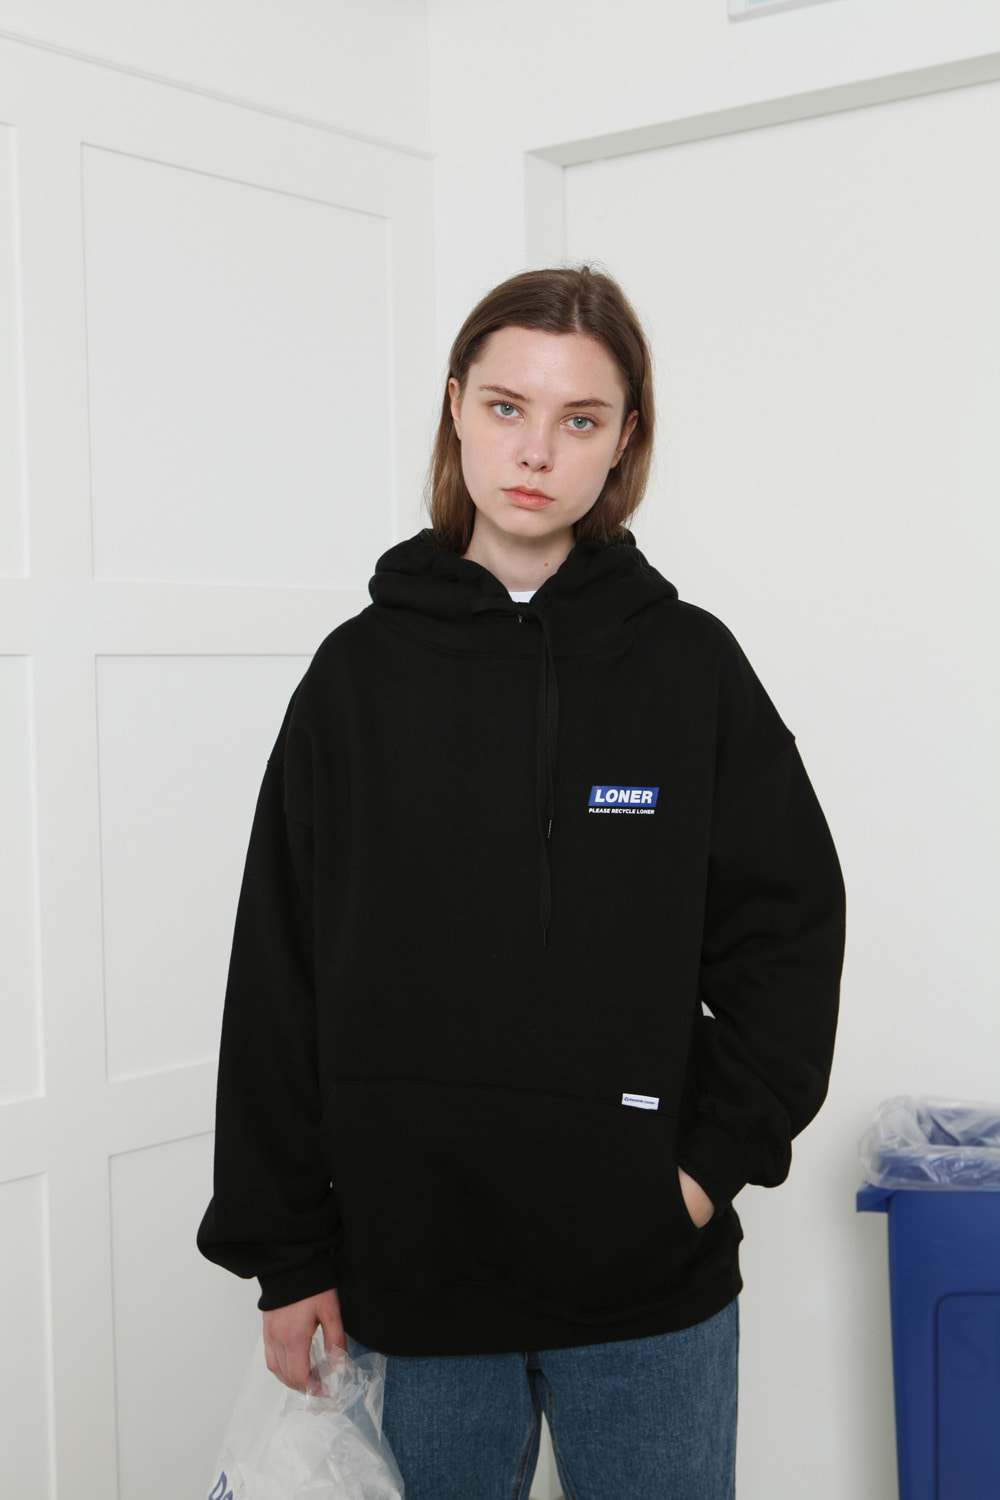 [LONER SEASON OFF SALE] Loner hoodie-black (기간한정 04.03 - 04.09)